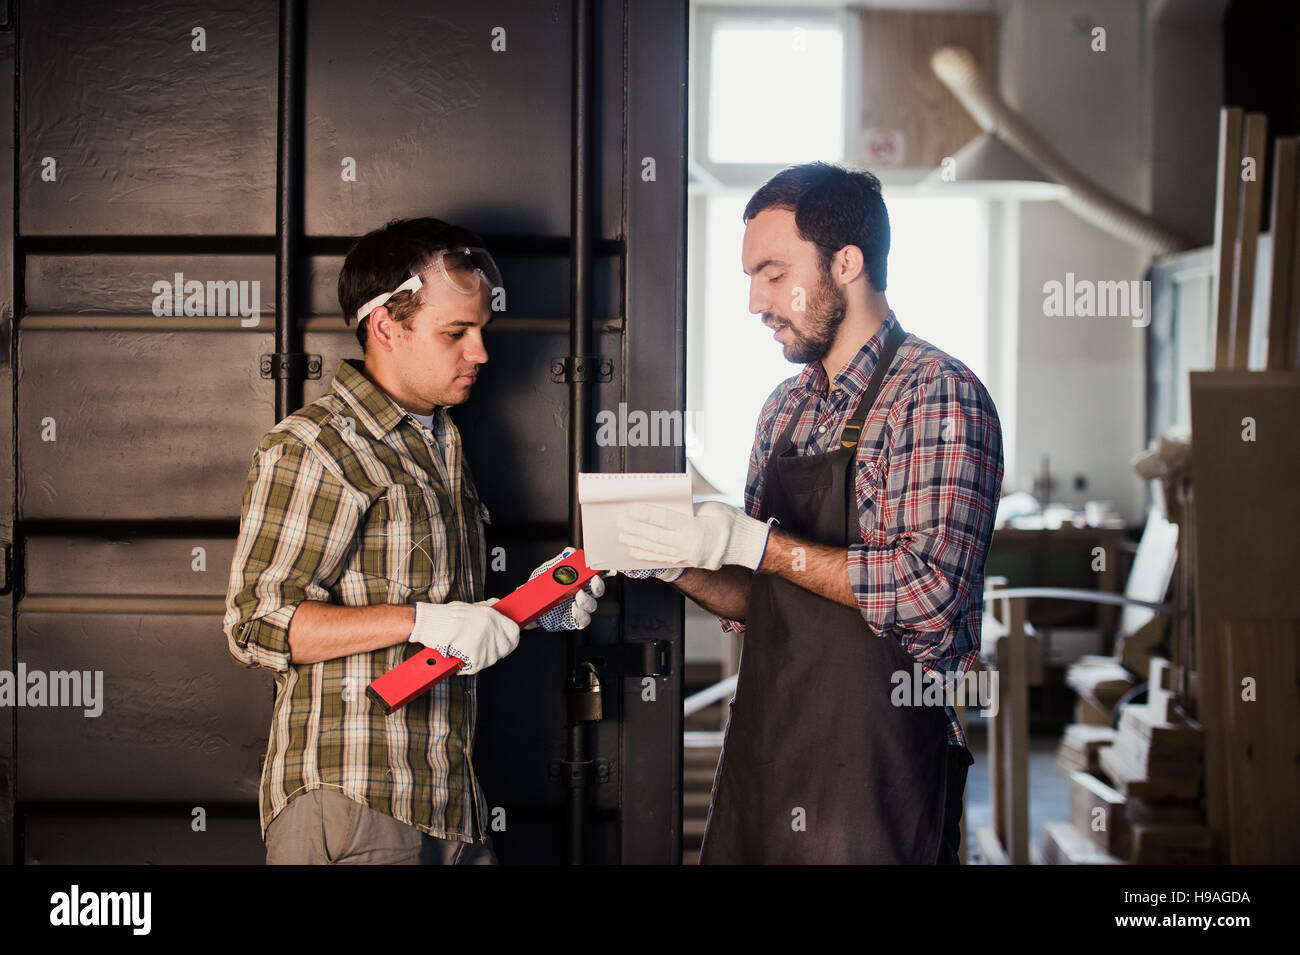 Two carpenters are talking while holding papers and ruler. One of them is wearing safety mask. Carpentry shop background - Stock Image